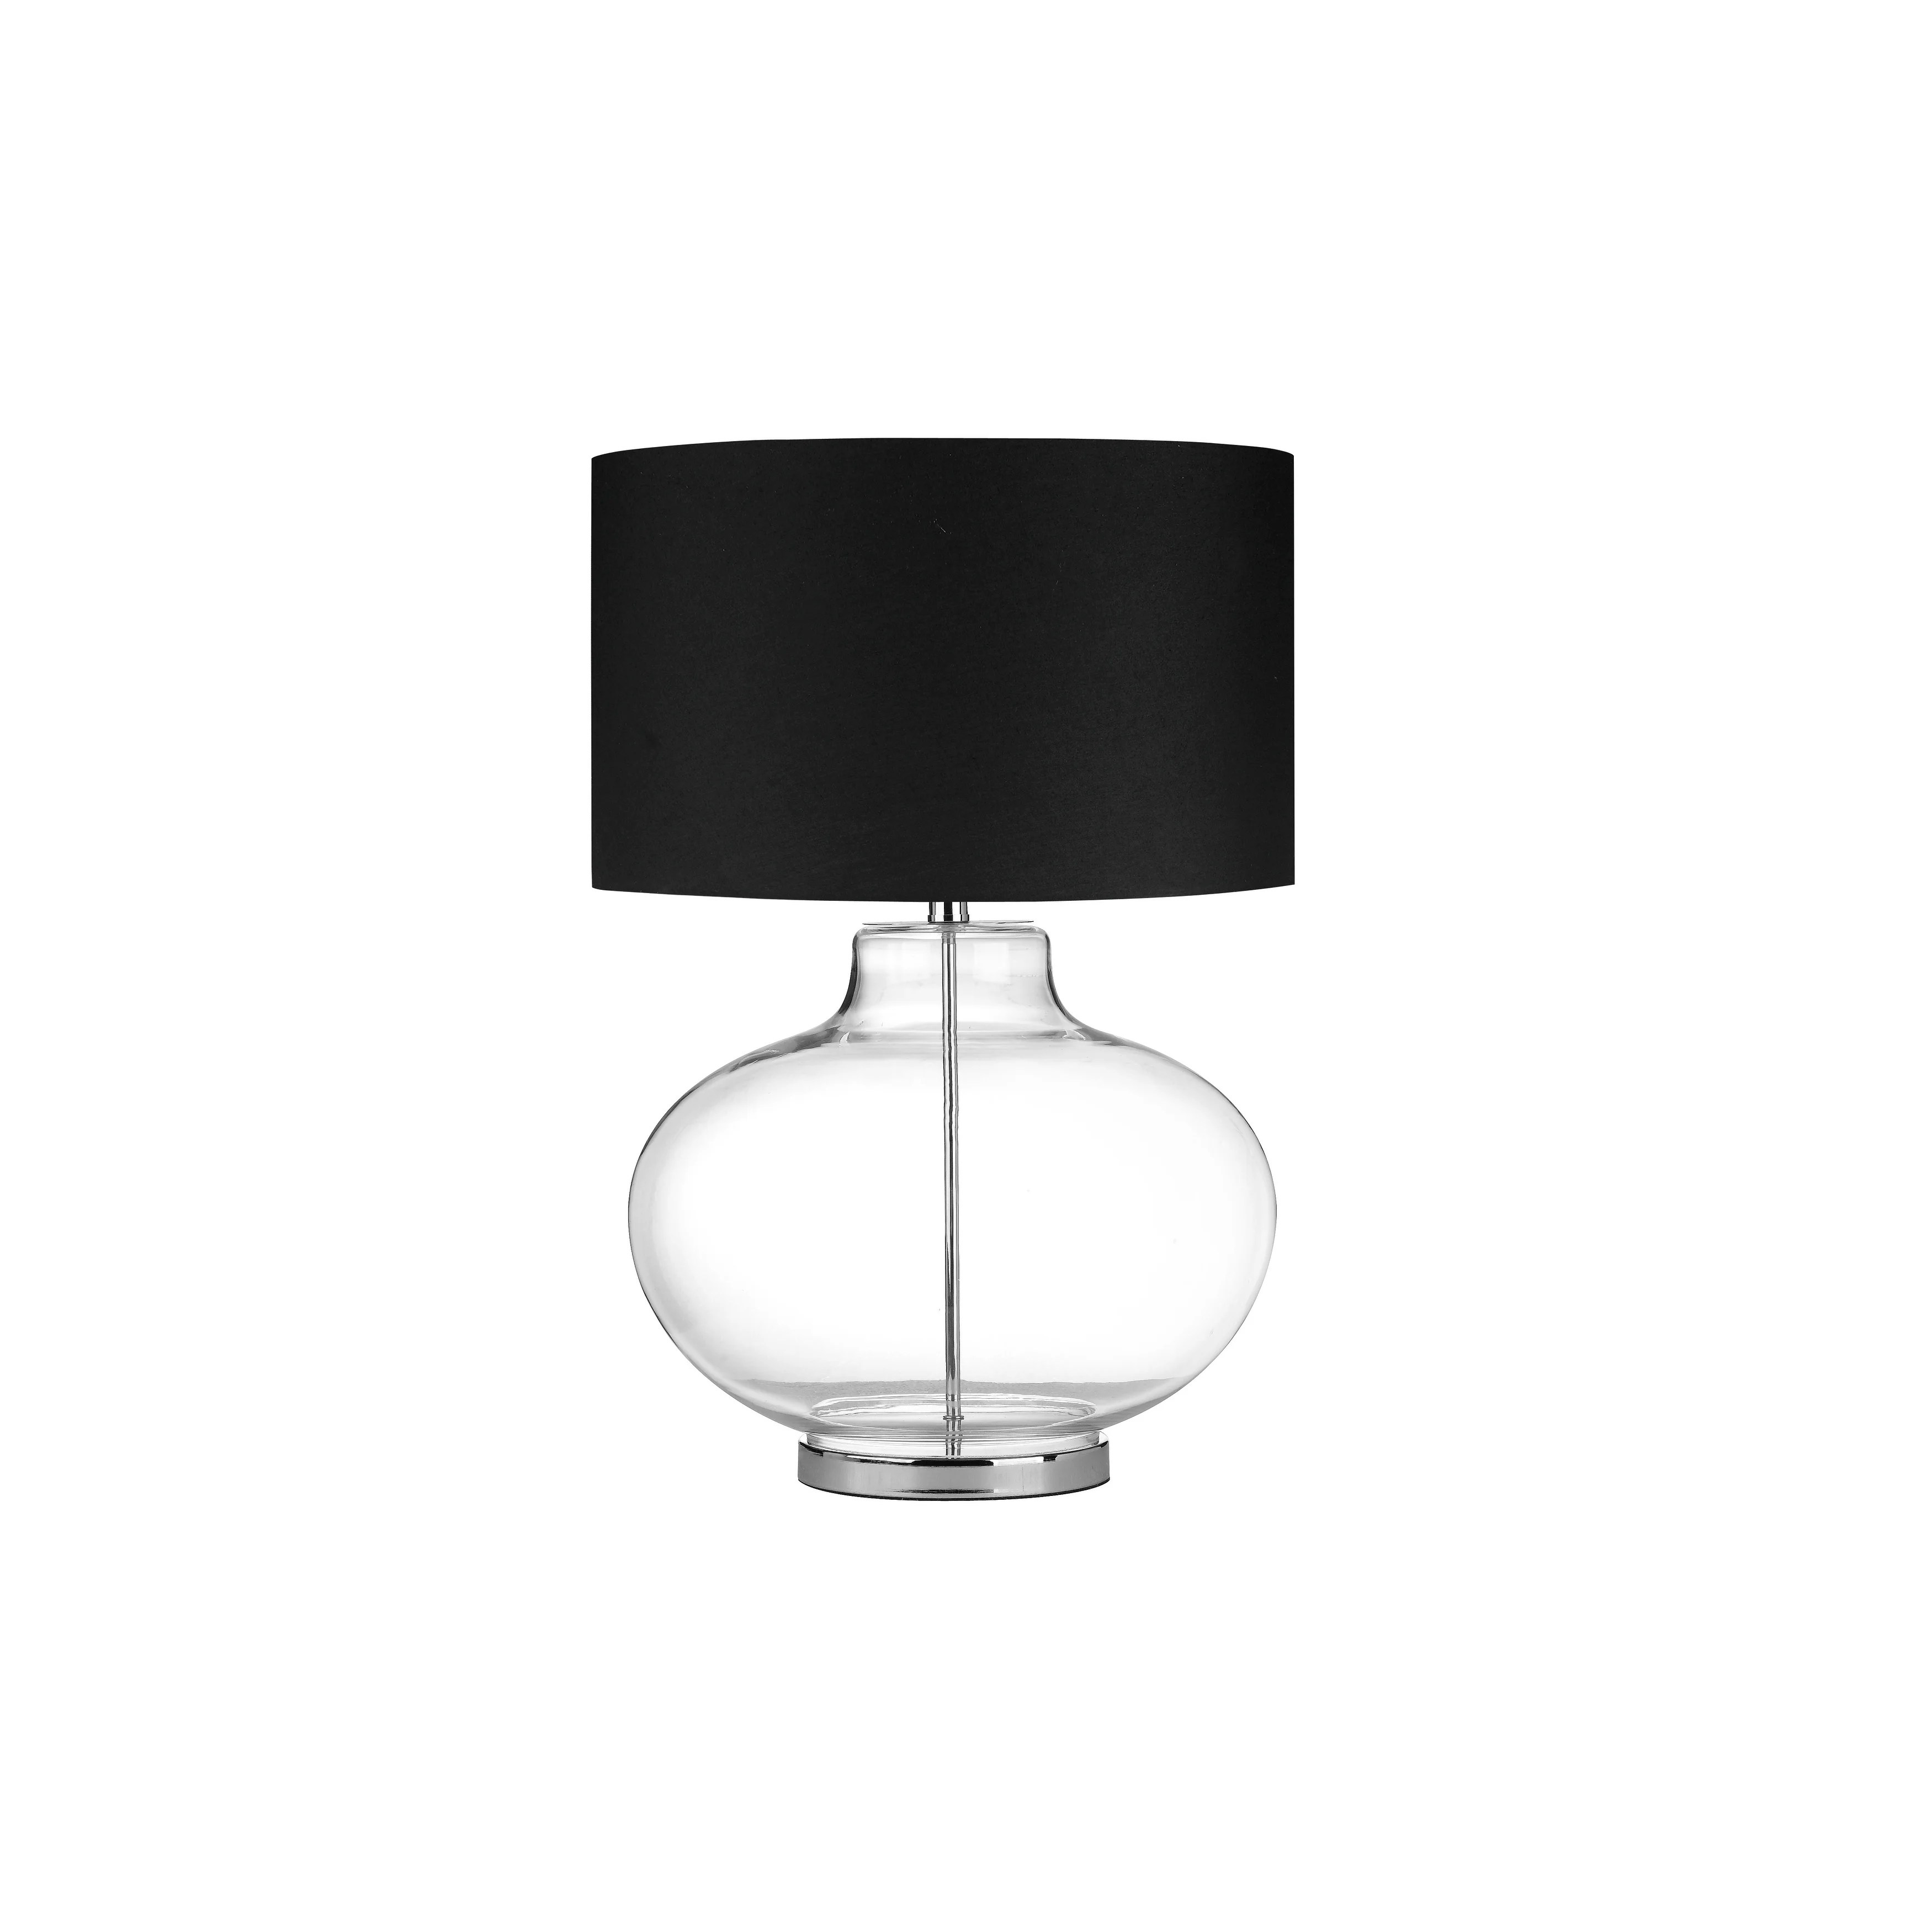 Glass Sphere Table Lamp With Metal Pole Running Inside And Drum Shade Black And Clear On Sale Overstock 27620281